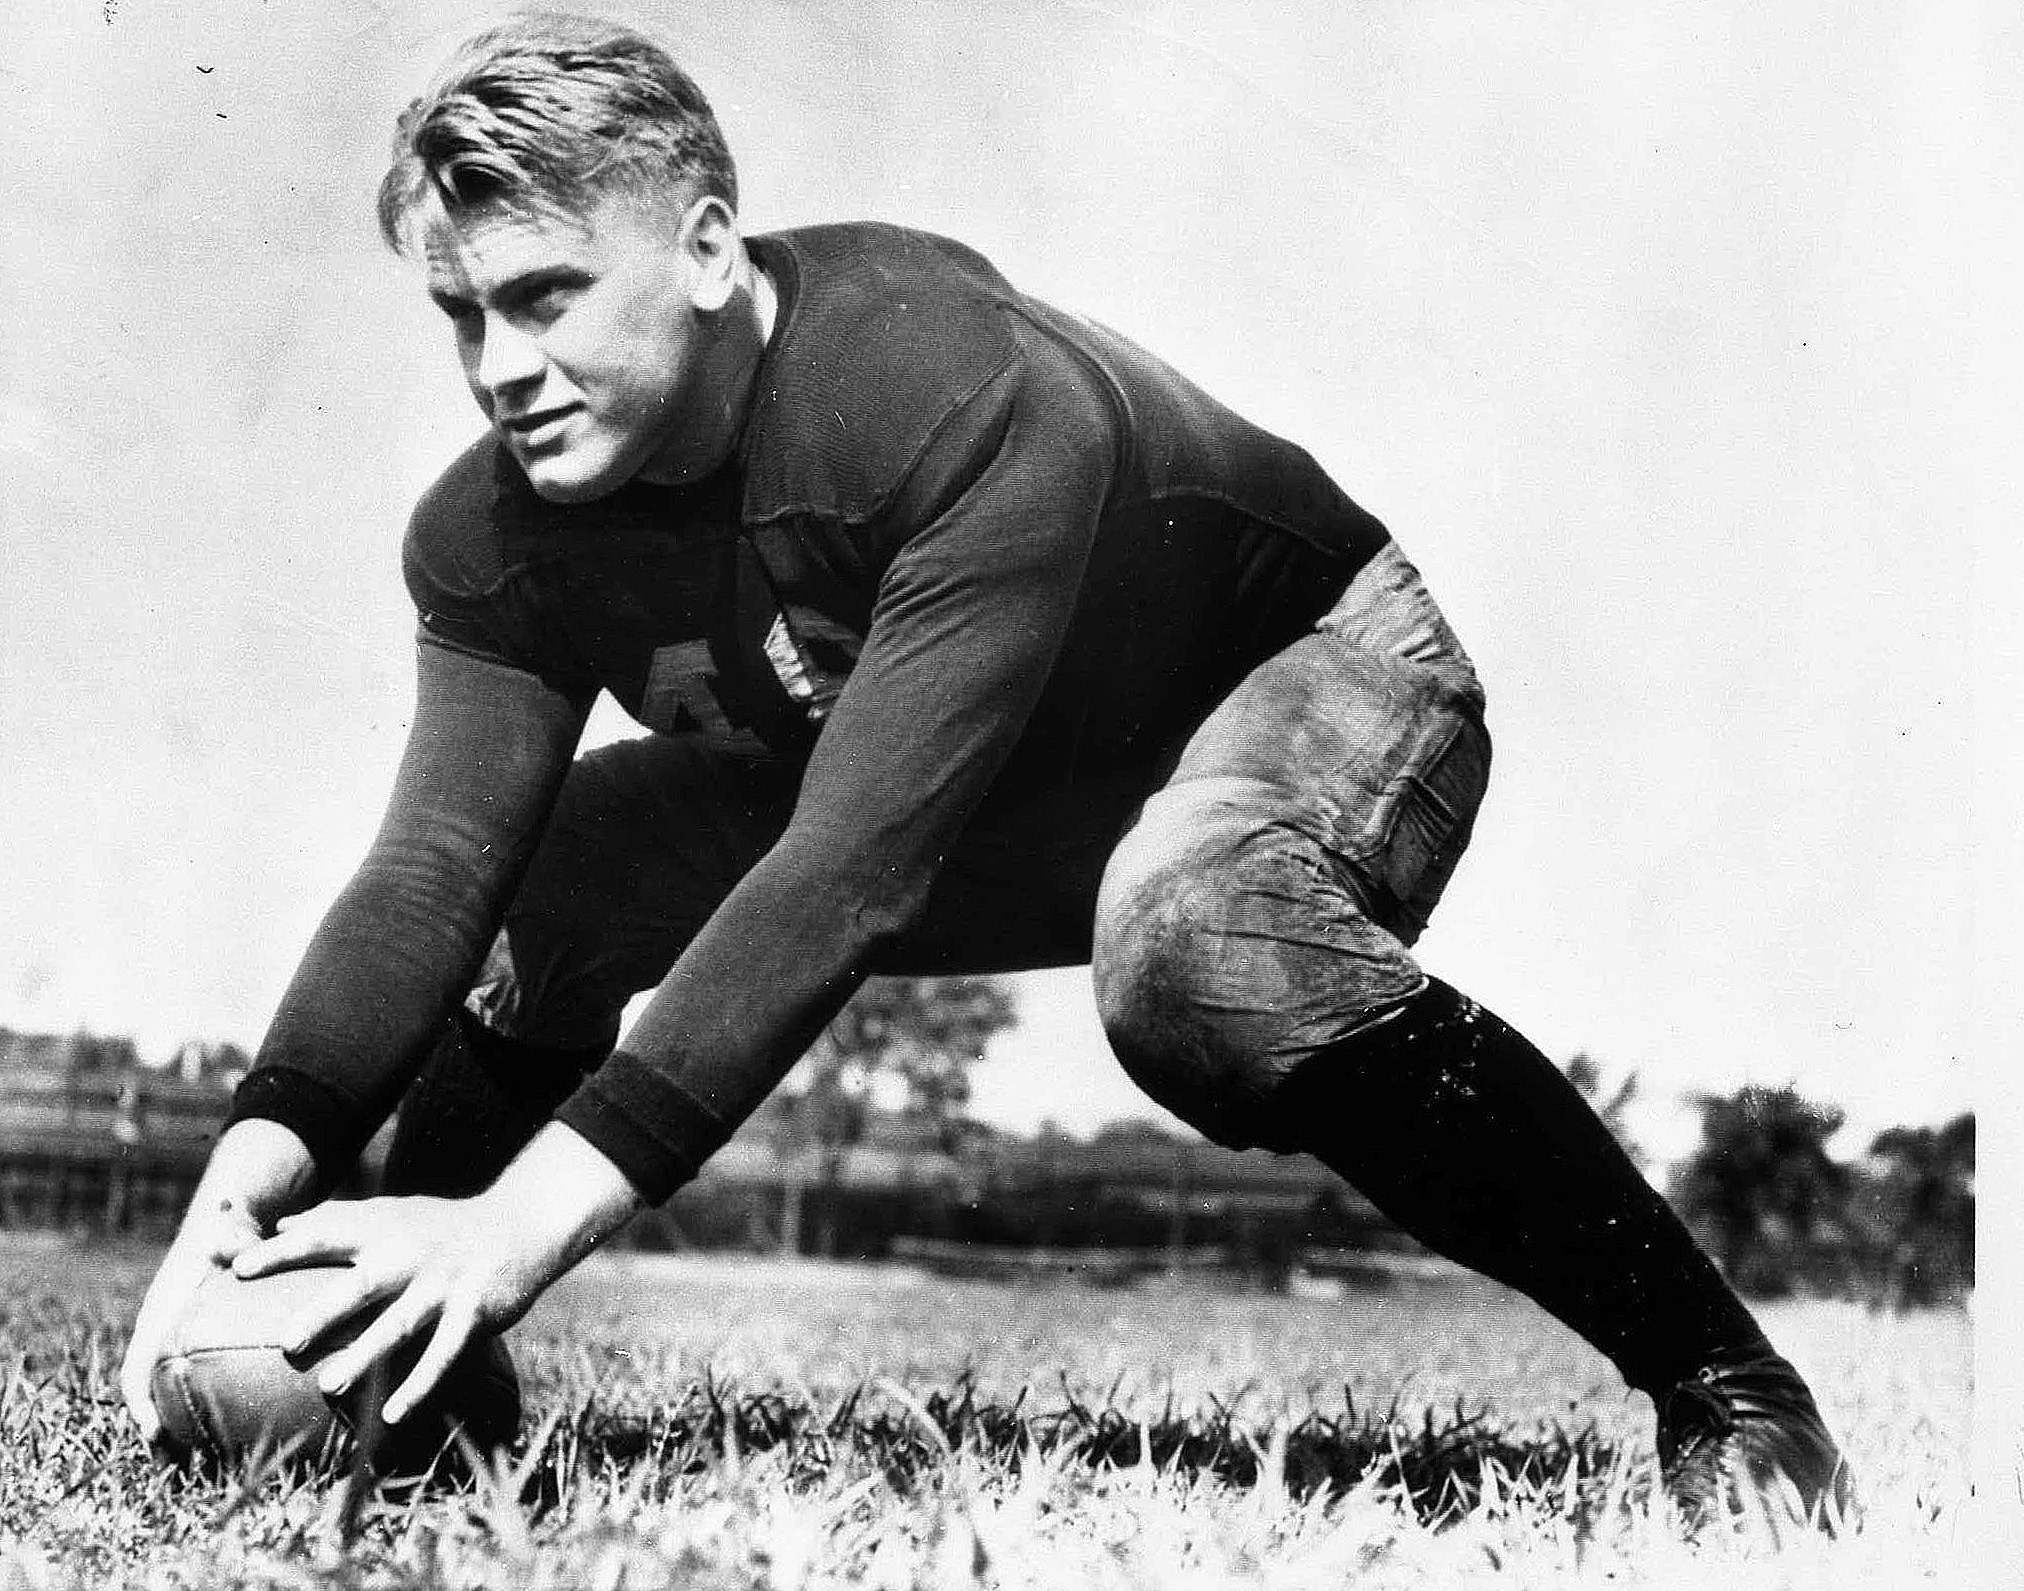 A uniformed but helmetless American Football player is shown on a football field. He is in a ready position, with legs in a wide stance and both hands on a football in front of him.